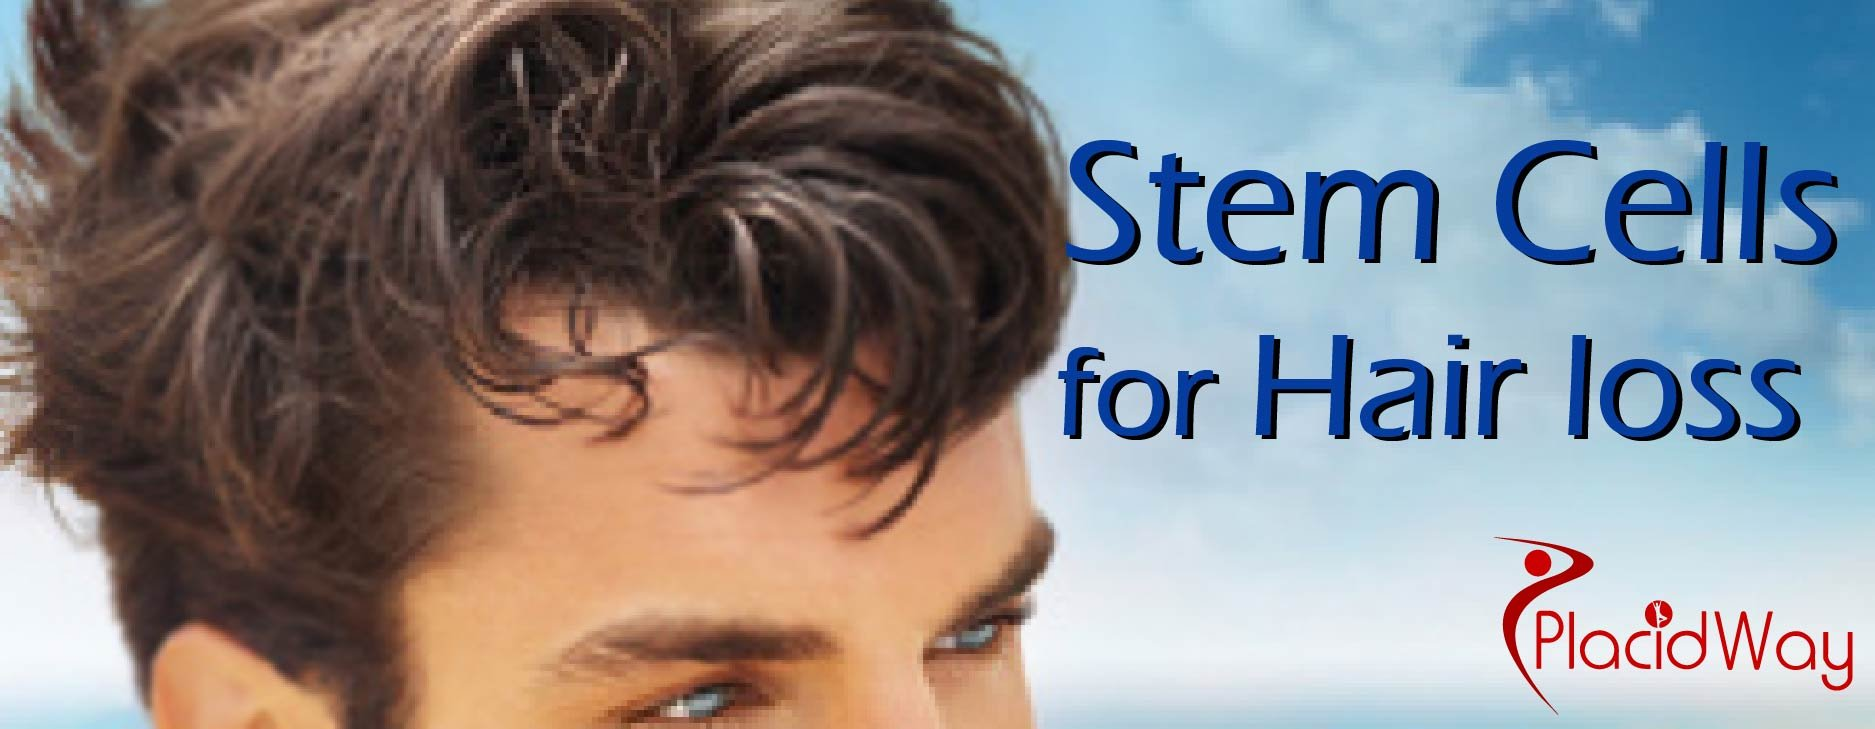 Hair Loss Treatment, Stem Cell Treatment for Hair Loss